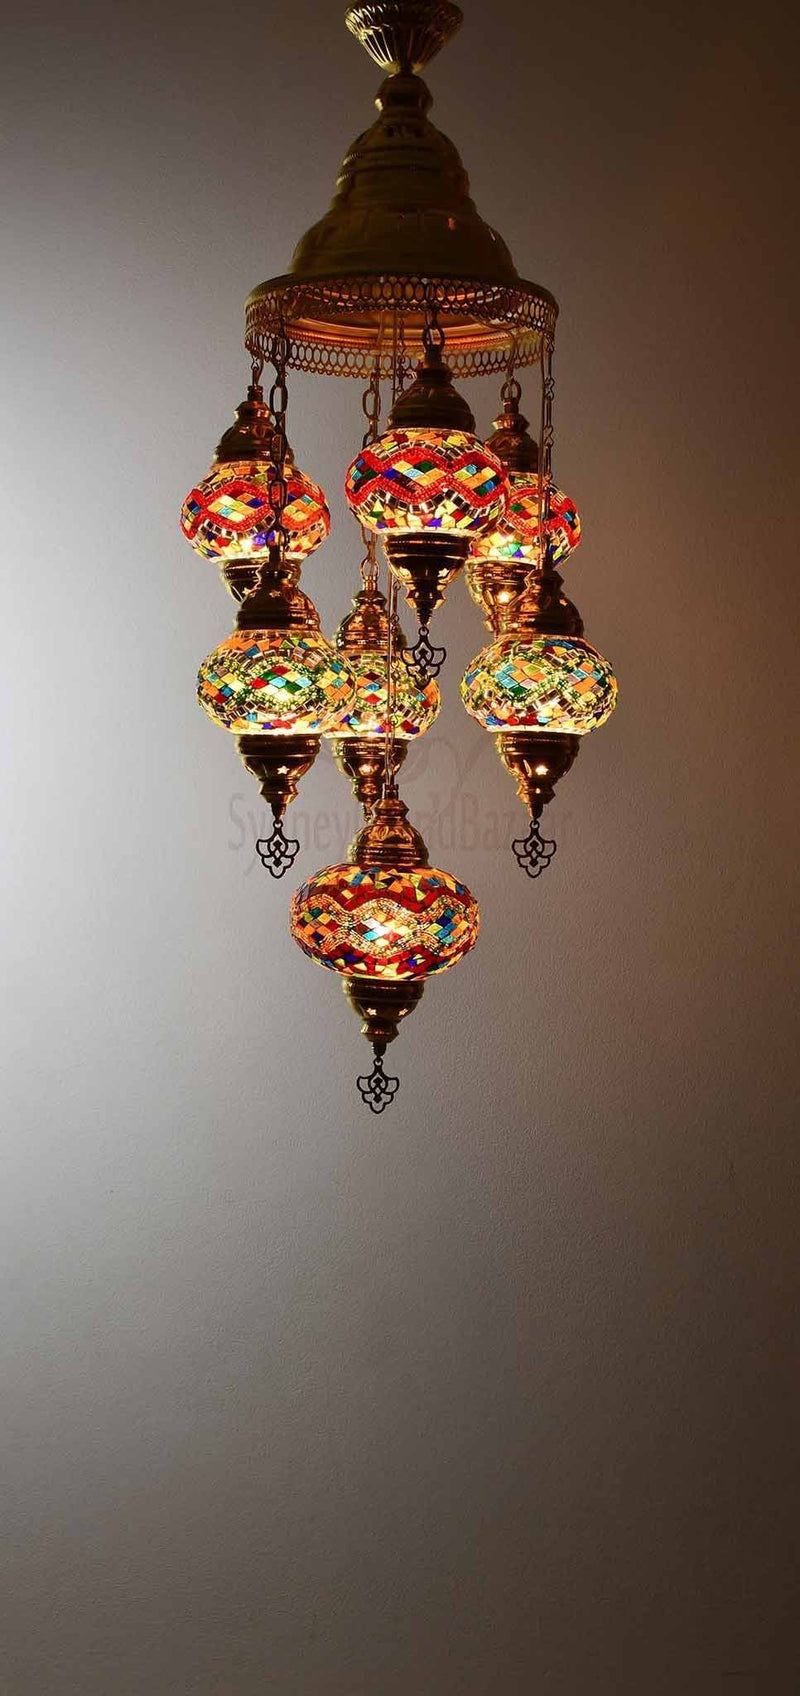 Turkish Mosaic Pendant Light 7 Globes in Gold Lighting Sydney Grand Bazaar Multicolour 3